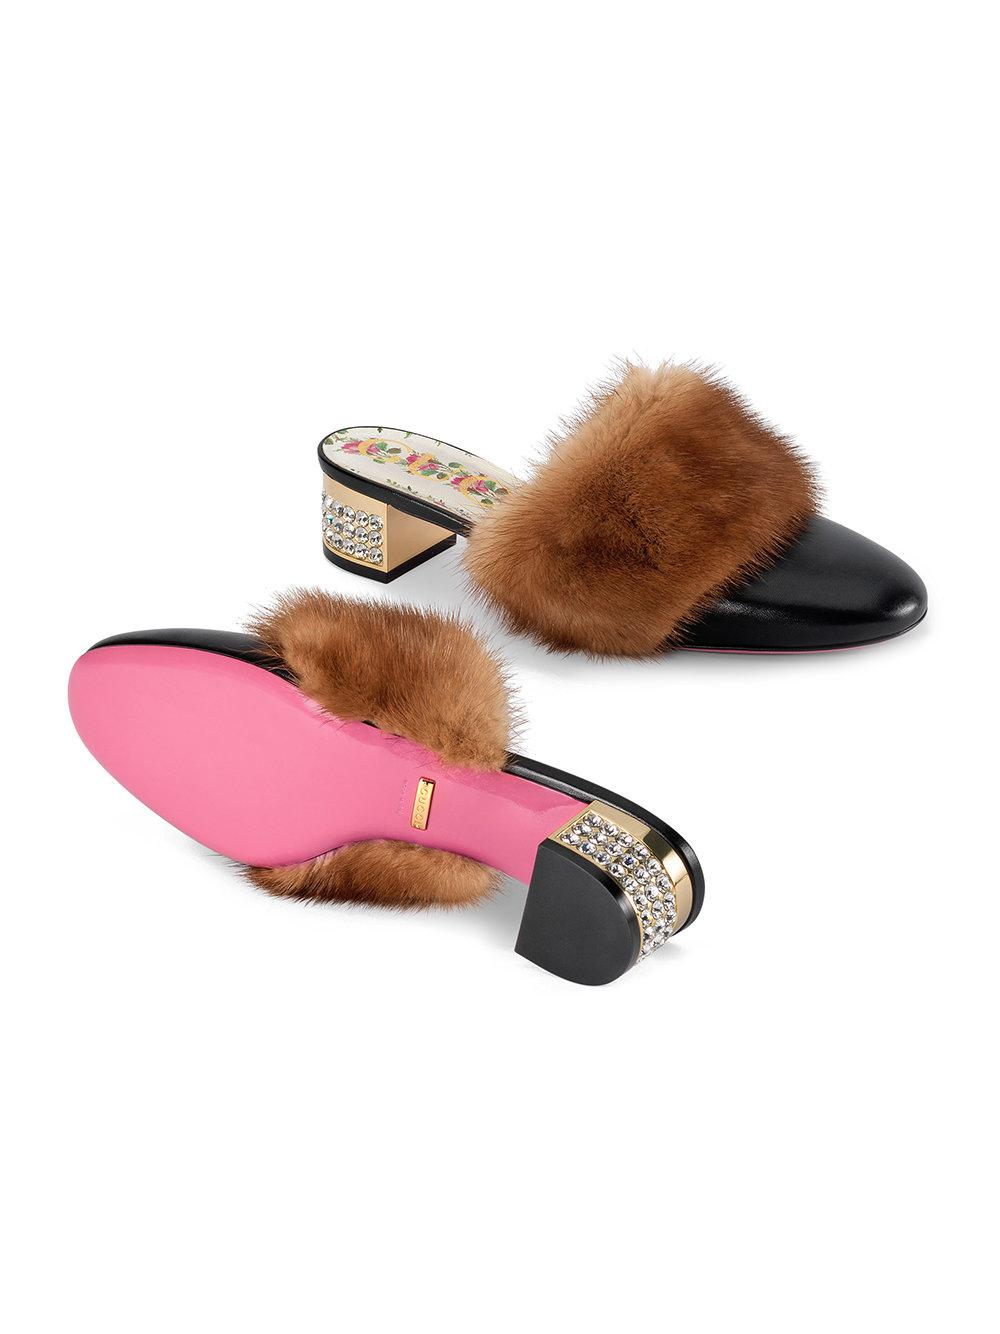 88286397c41 Gucci - Black Leather Slide With Mink Fur - Lyst. View fullscreen